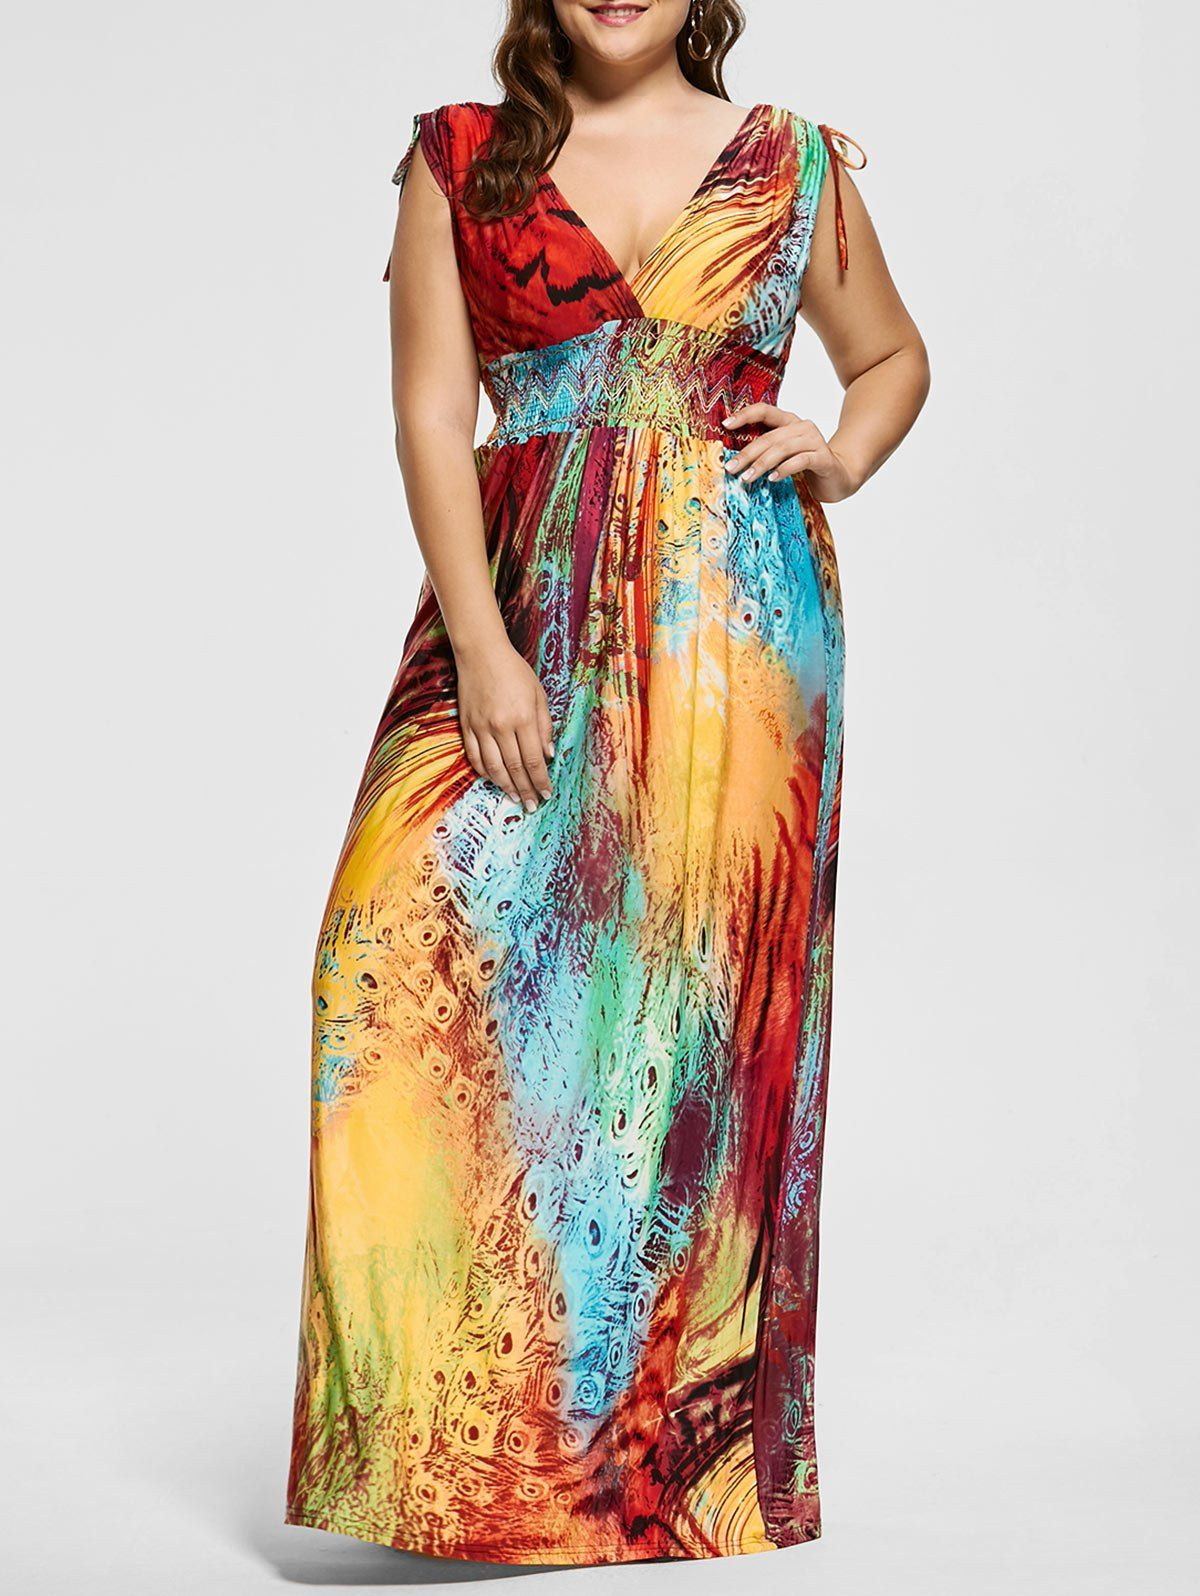 Plunging Neck Printed Floor Length Plus Size Dress Long Sleeve